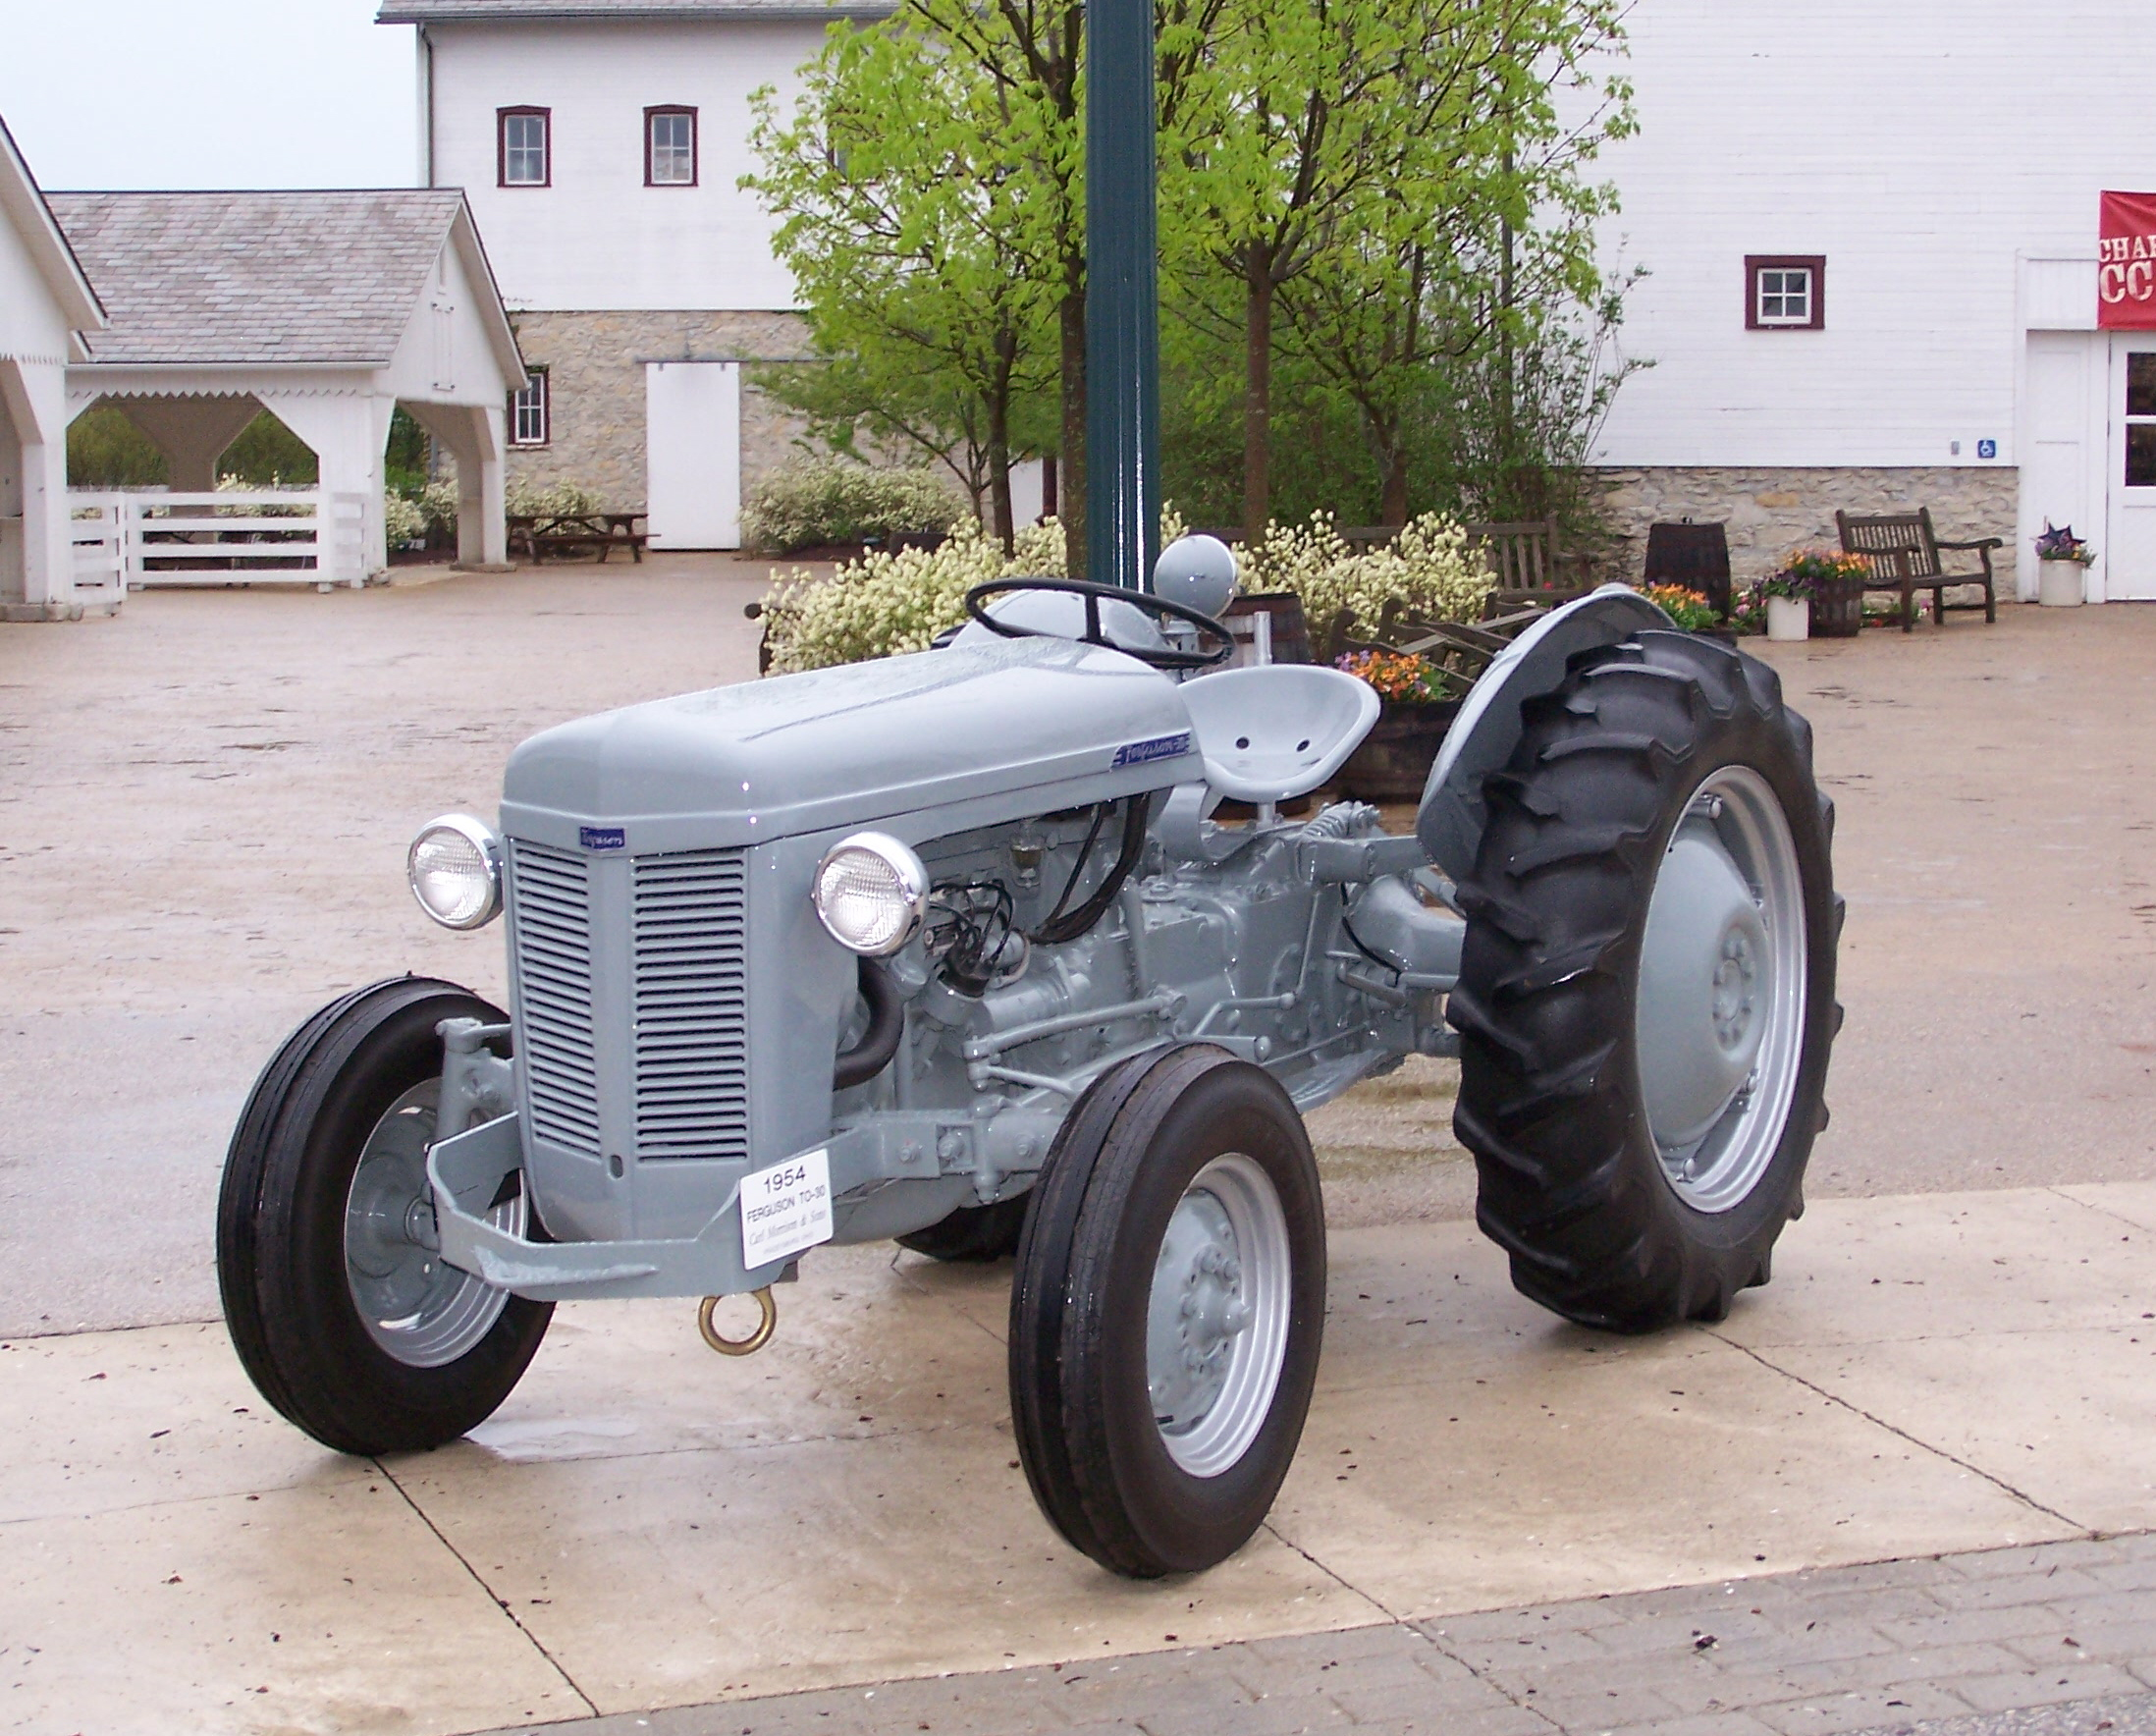 Ford Ferguson Tractor : Featured antique tractor ford ferguson osagcd